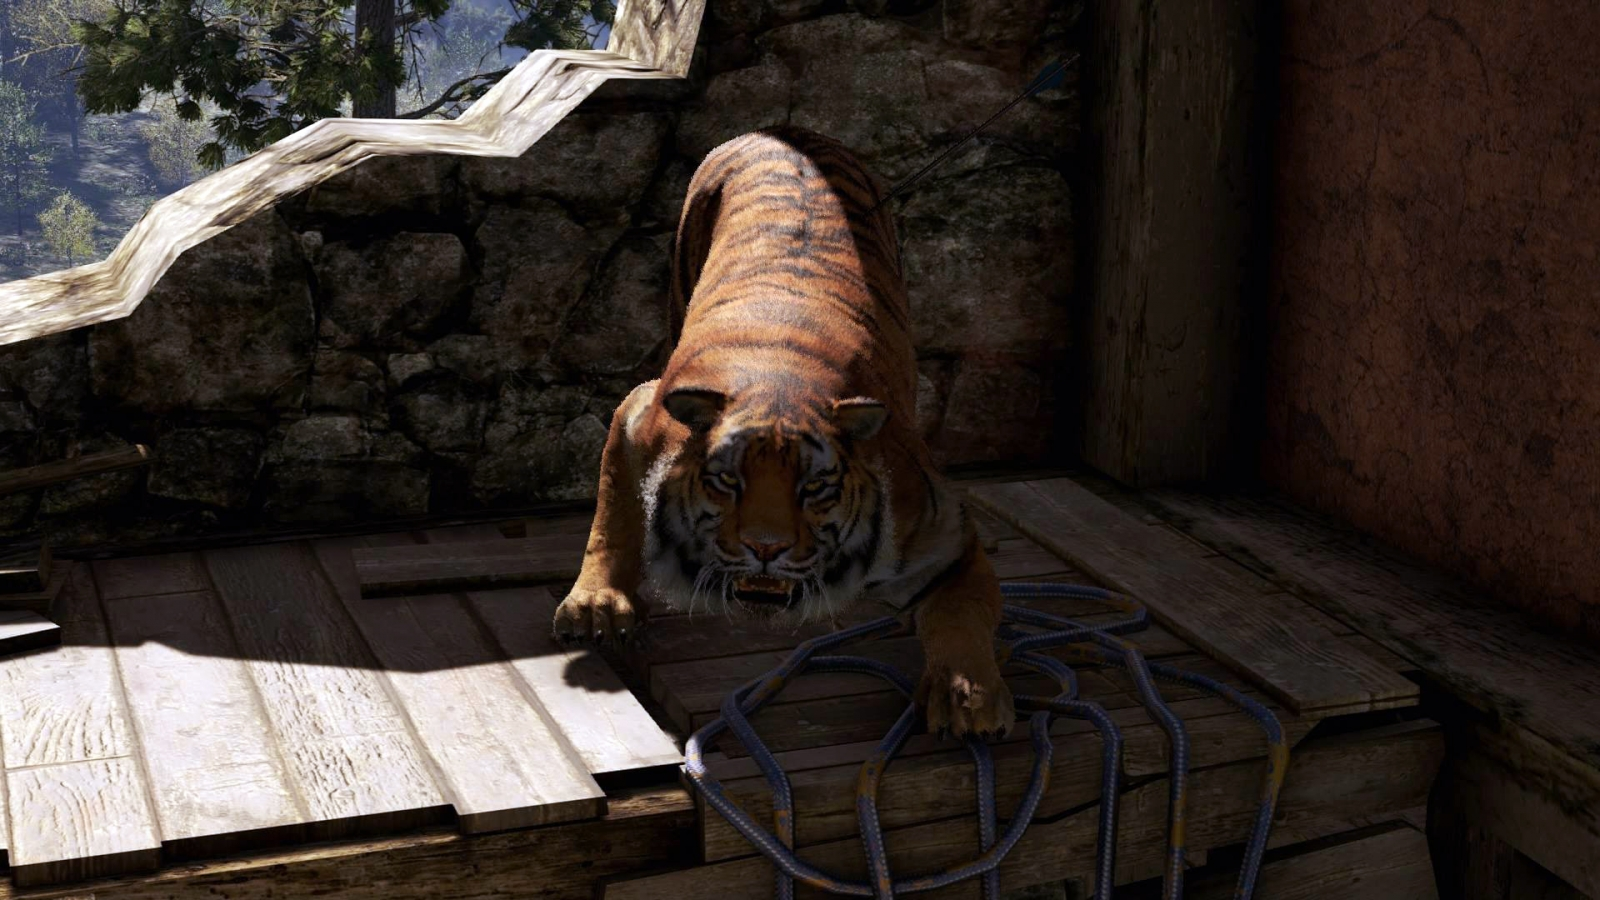 Bengal Tiger Far Cry 4 Far Cry 4 This Bengal